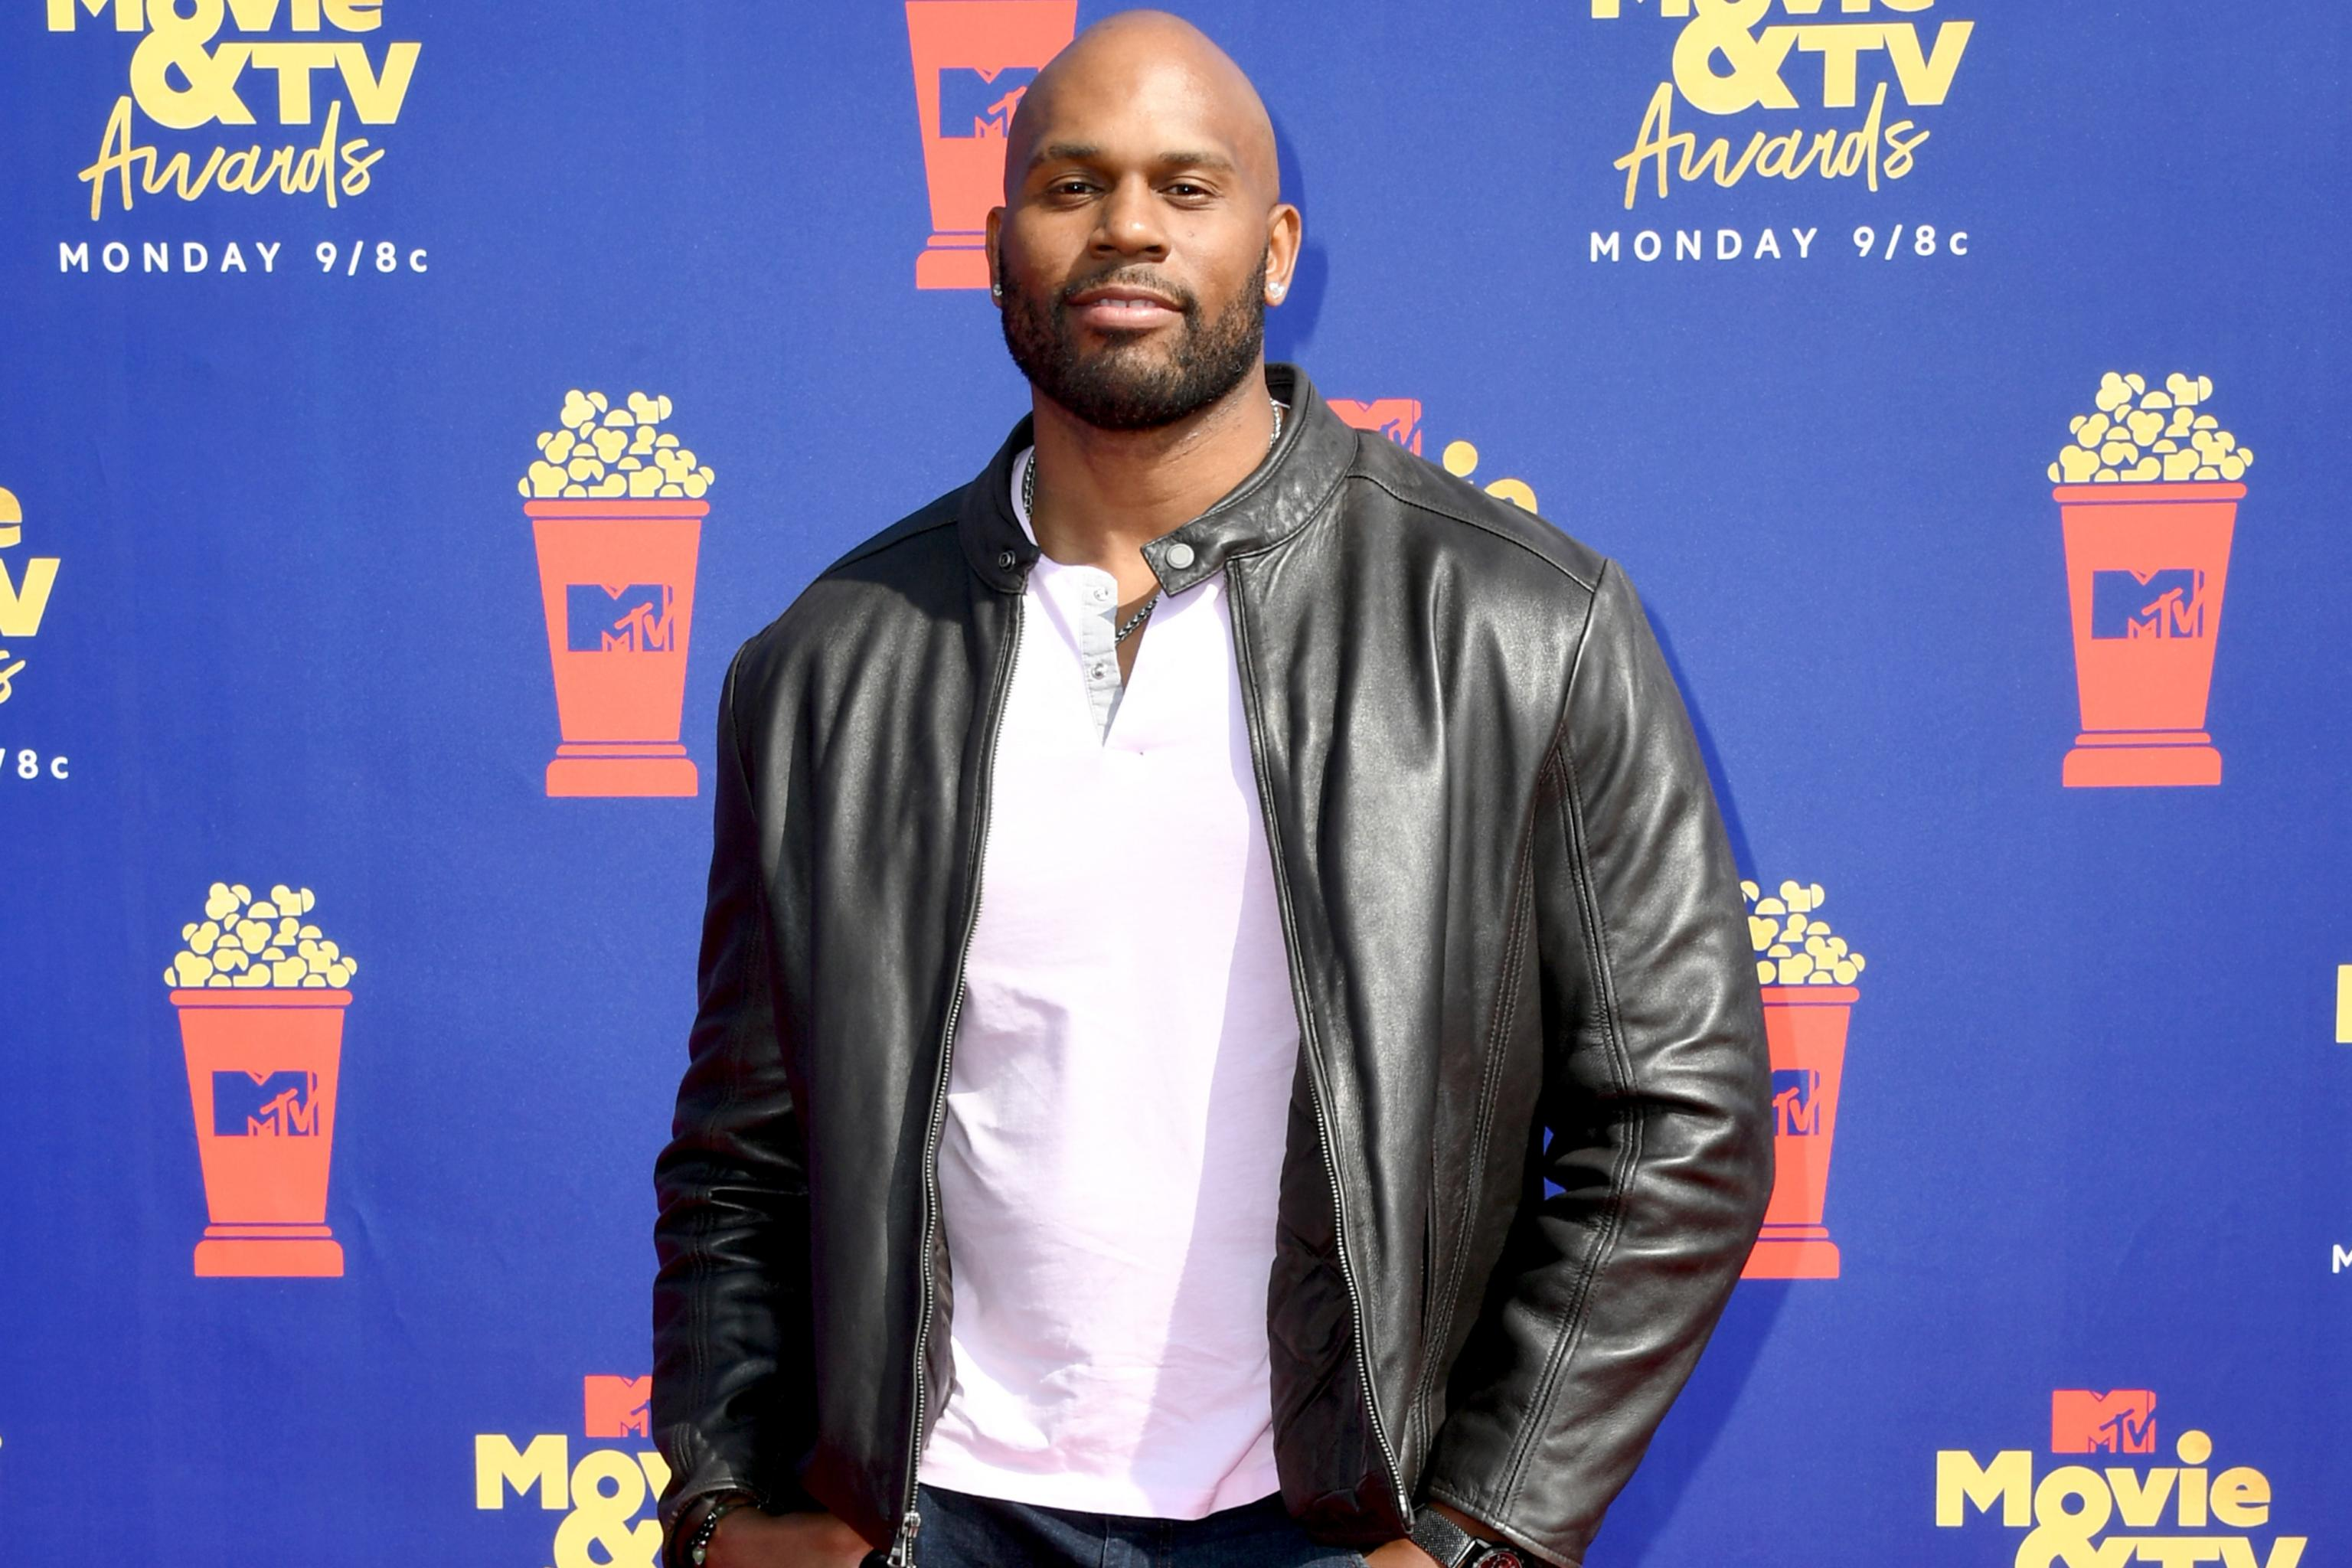 Shad Gaspard Dies at Age 39 After Drowning in Swimming Accident 3072x2048